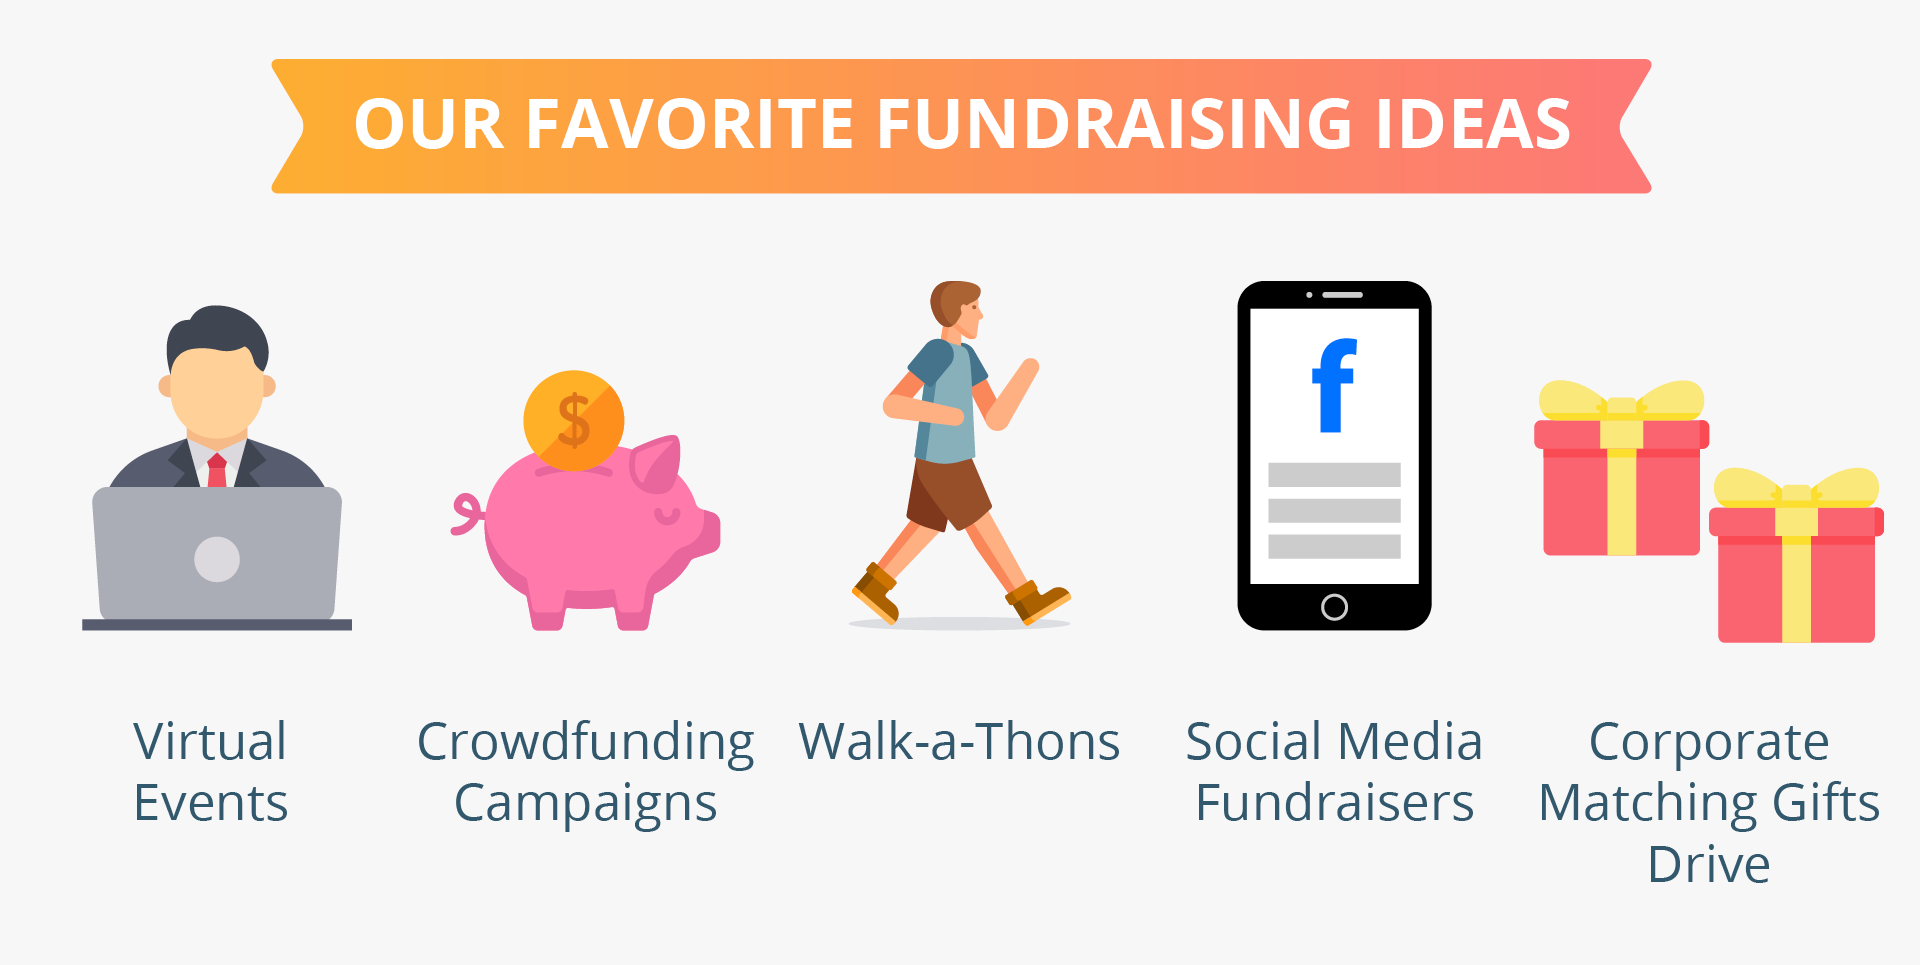 Our Favorite Fundraising Ideas: Virtual events, crowdfunding, walk-a-thons, social media fundraisers, corporate matching gifts